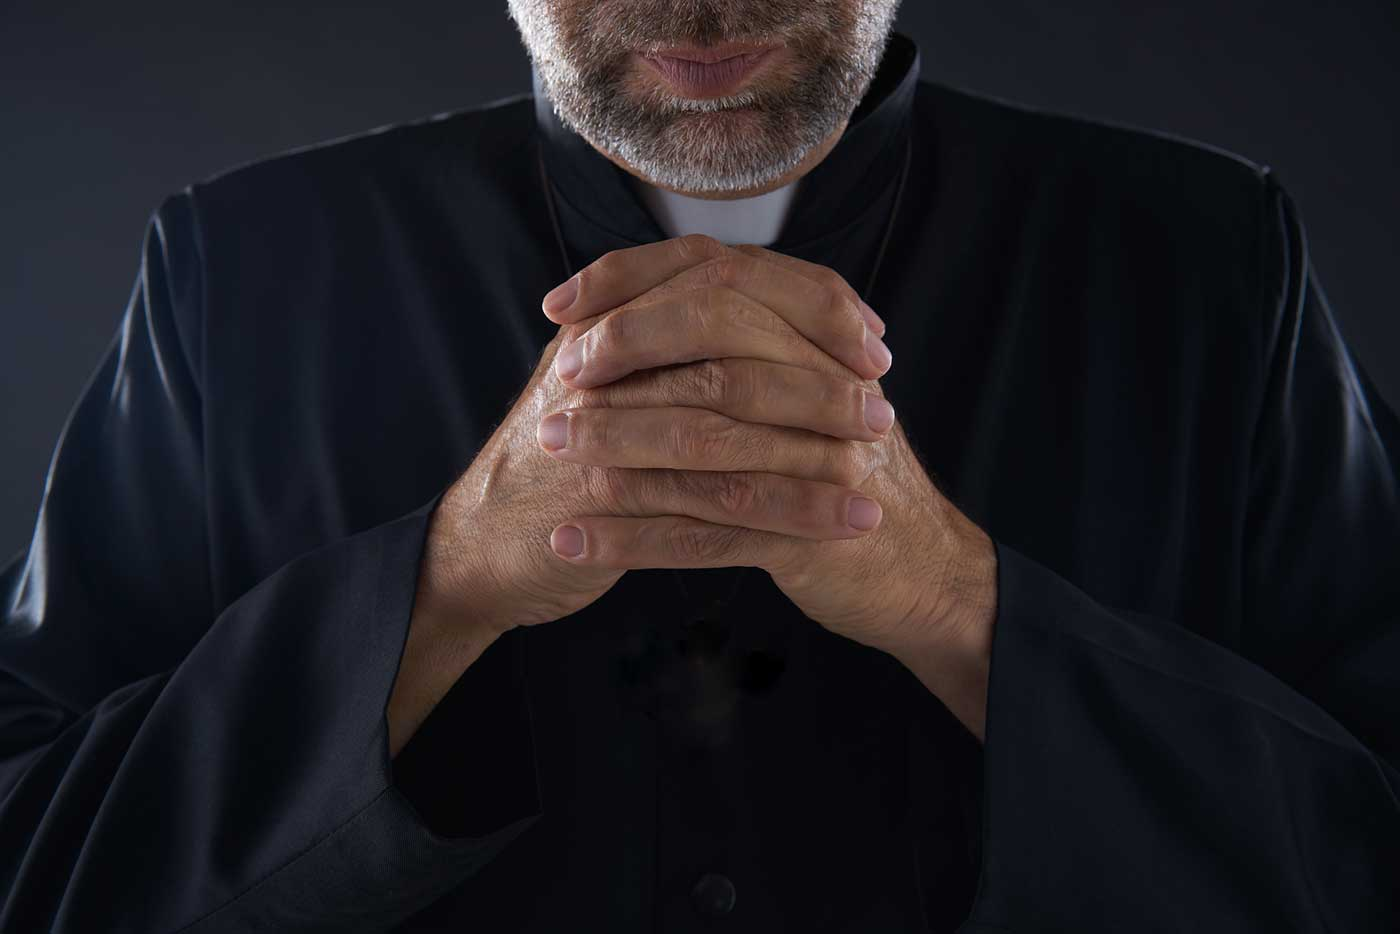 Ask The Batemaster: I'm A Priest And Don't Think Masturbation Is A Sin